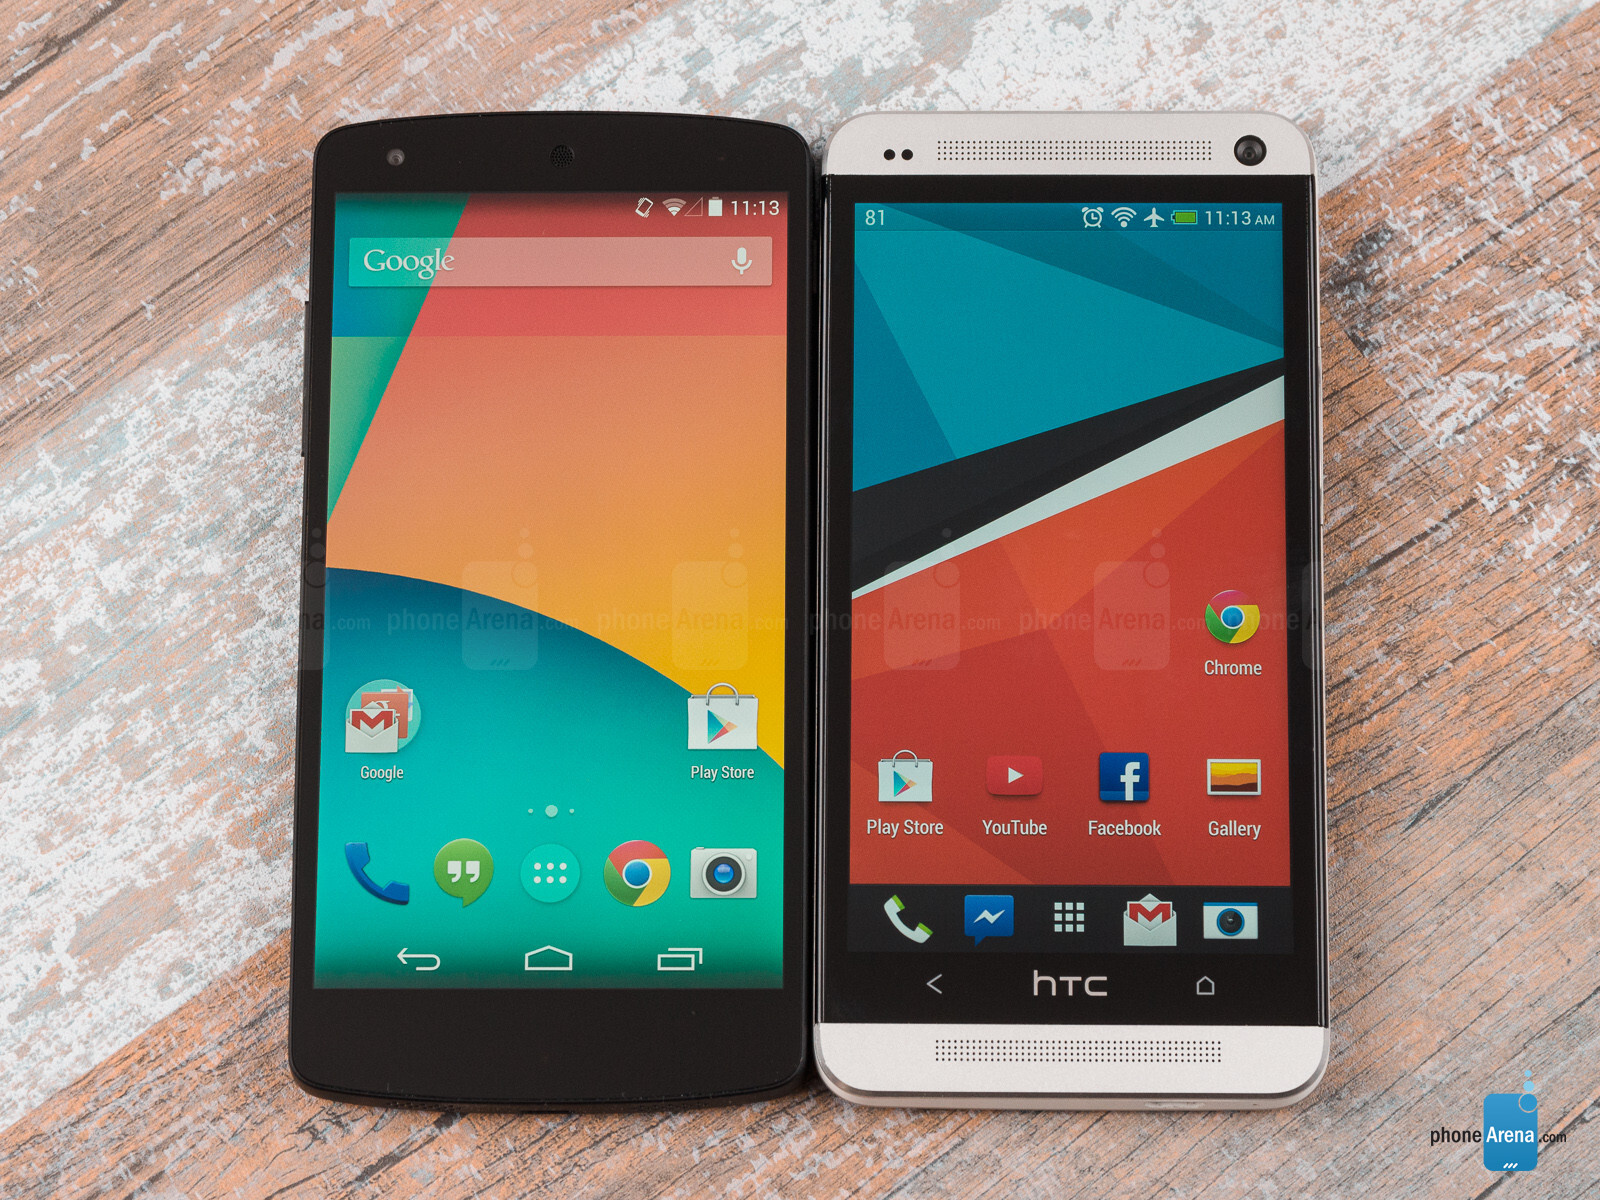 will soon, nexus 5 vs htc one max received after